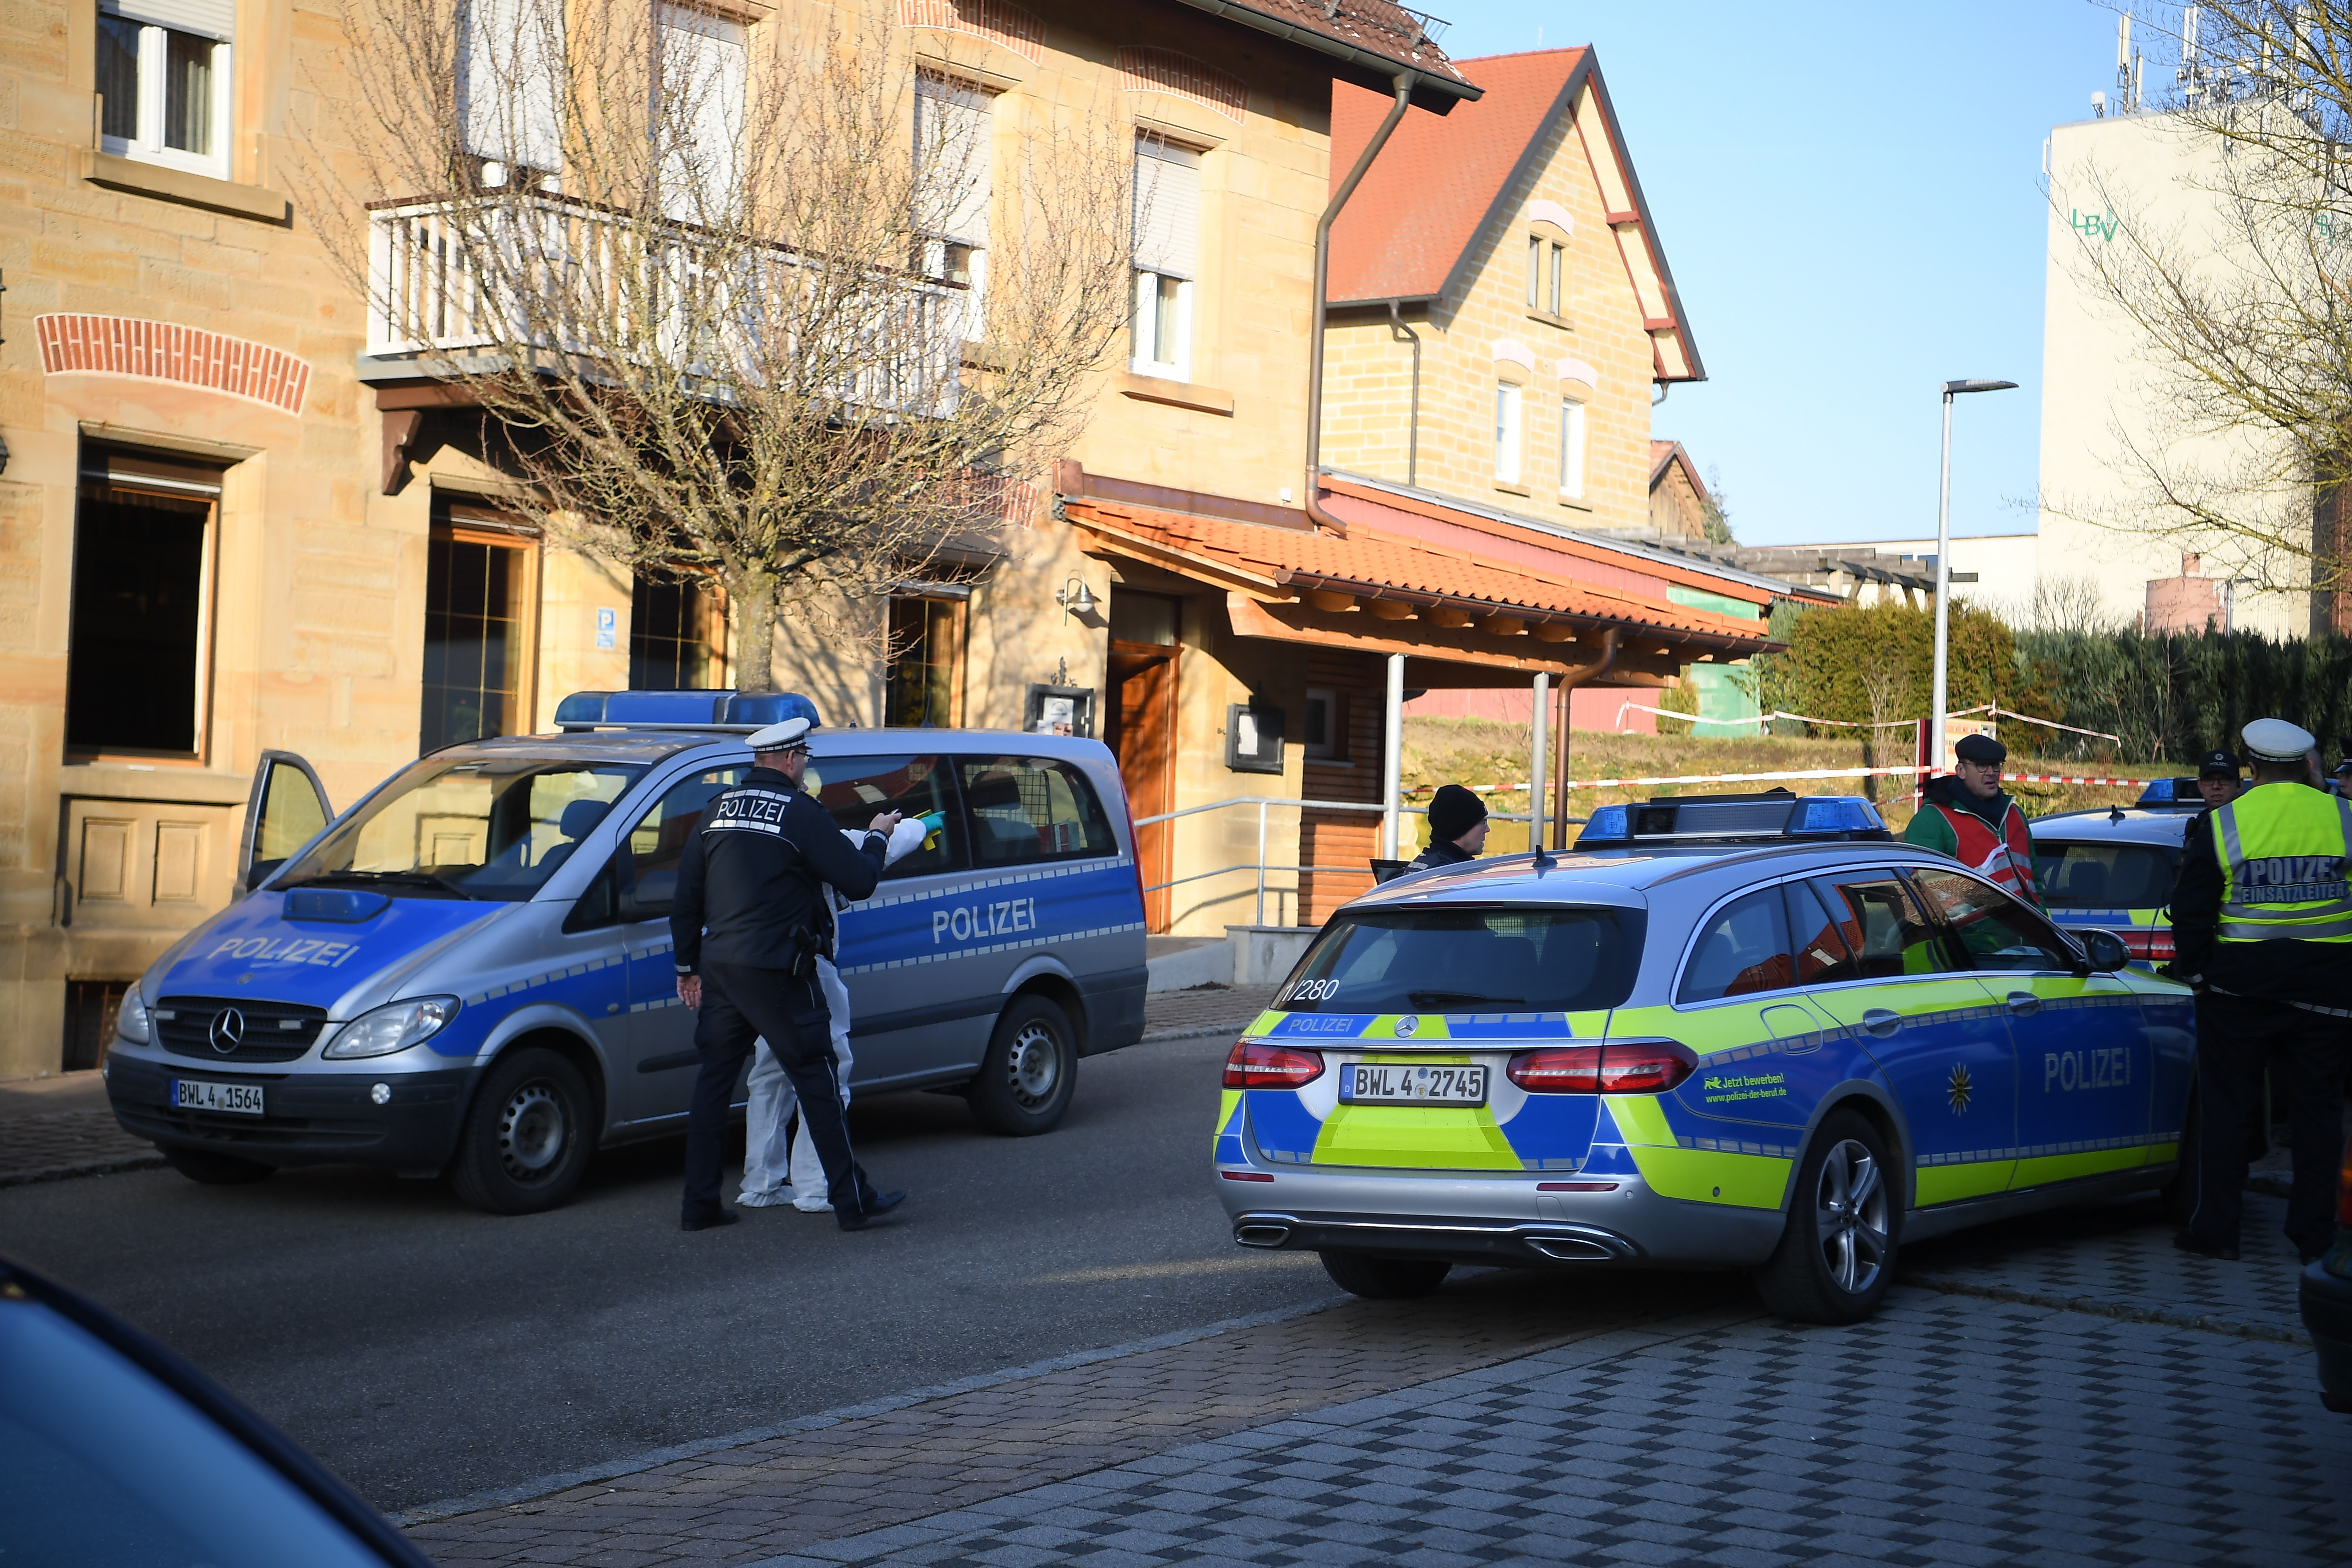 Police at the scene after shots were fired in Rot Am See, Germany on Jan. 24, 2020.